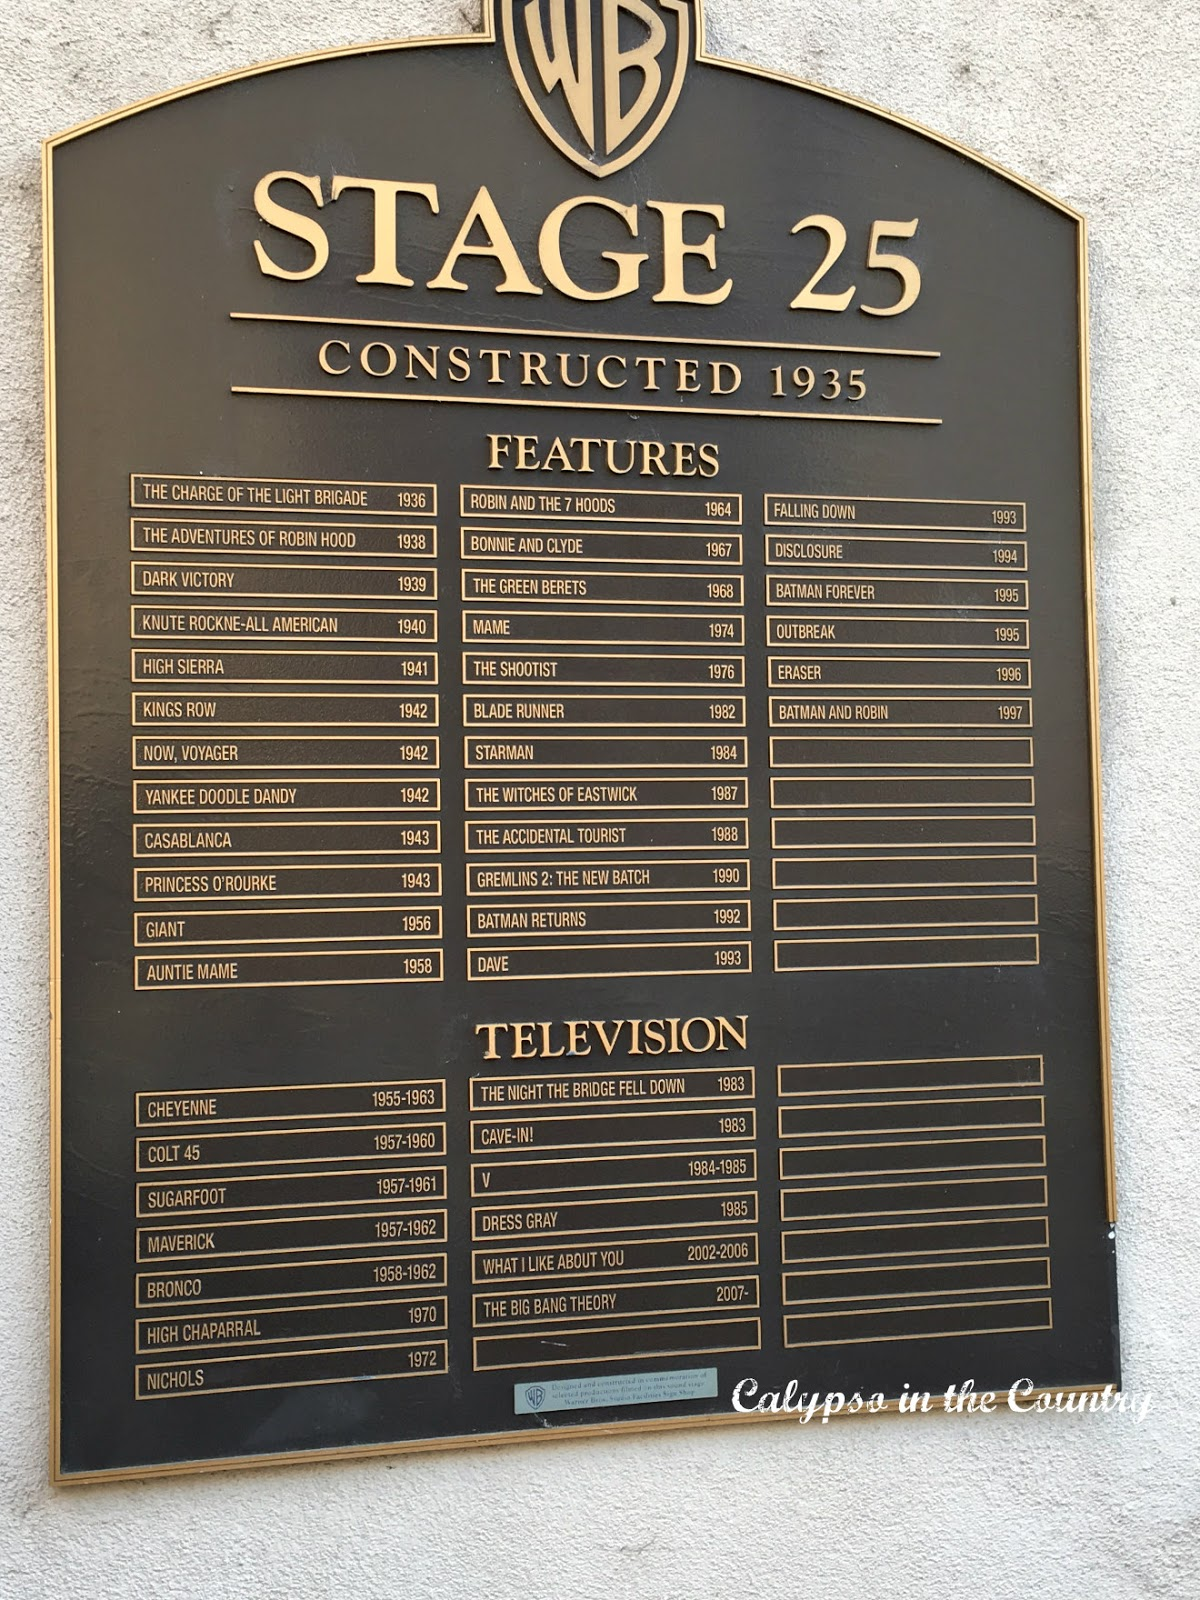 WB Studio Stage 25 - Big Bang Theory